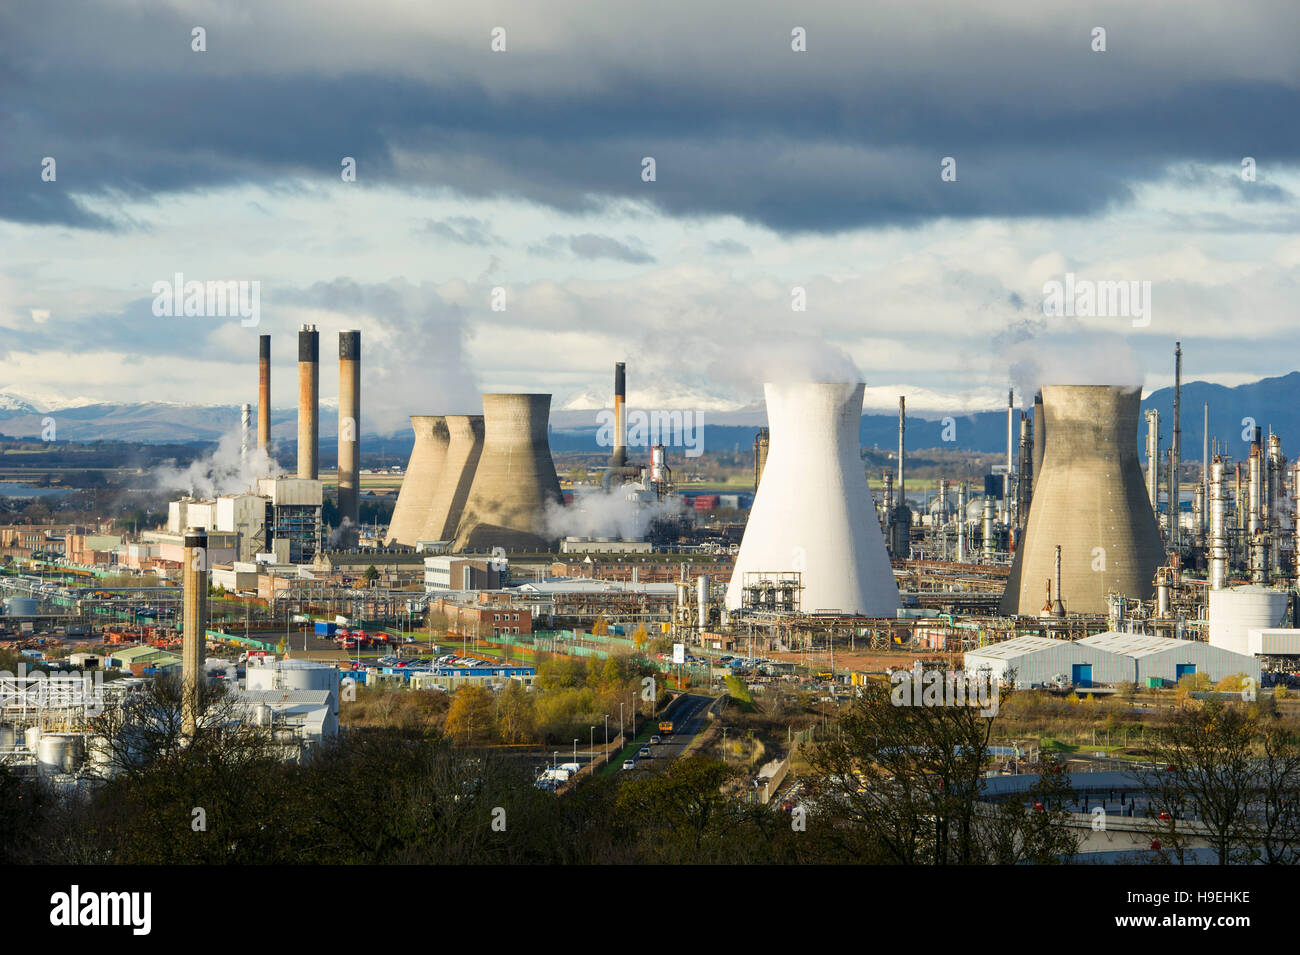 The Grangemouth oil refinery Scotland. Grangemouth Ineos is the largest manufacturing site by volume of products. - Stock Image